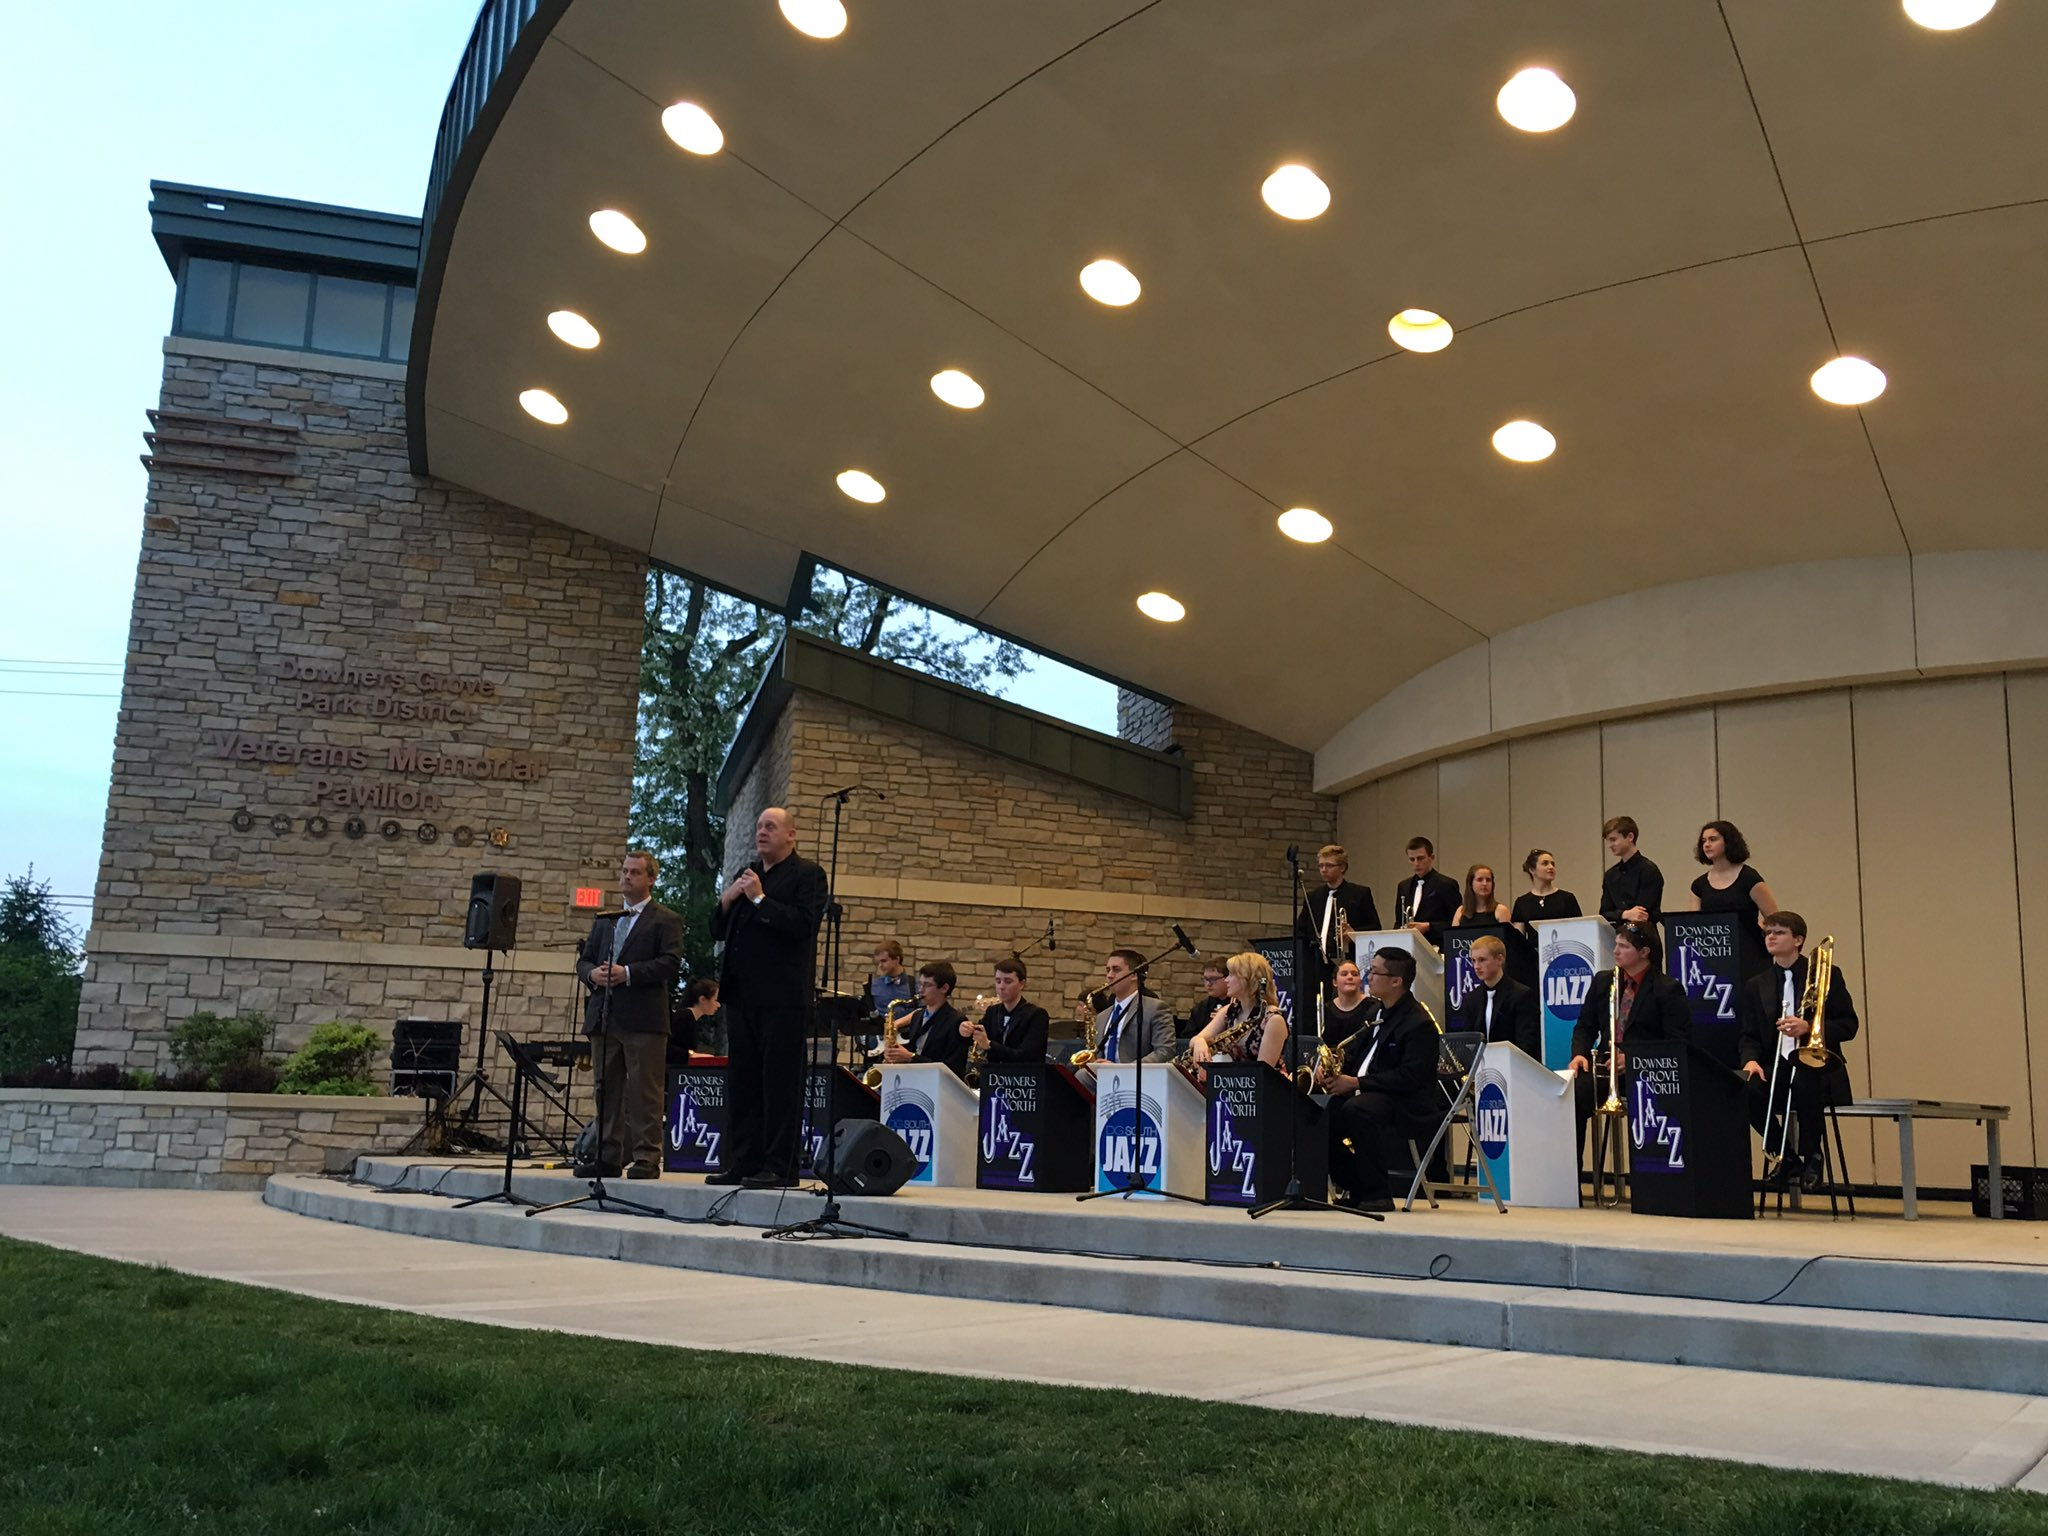 Bon Voyage Teaser by @Dist_99 Honors Jazz Ensemble. Heading to Europe this summer! #99Learns @dgnbands @DGS_Bands https://t.co/CPkzDucPg2